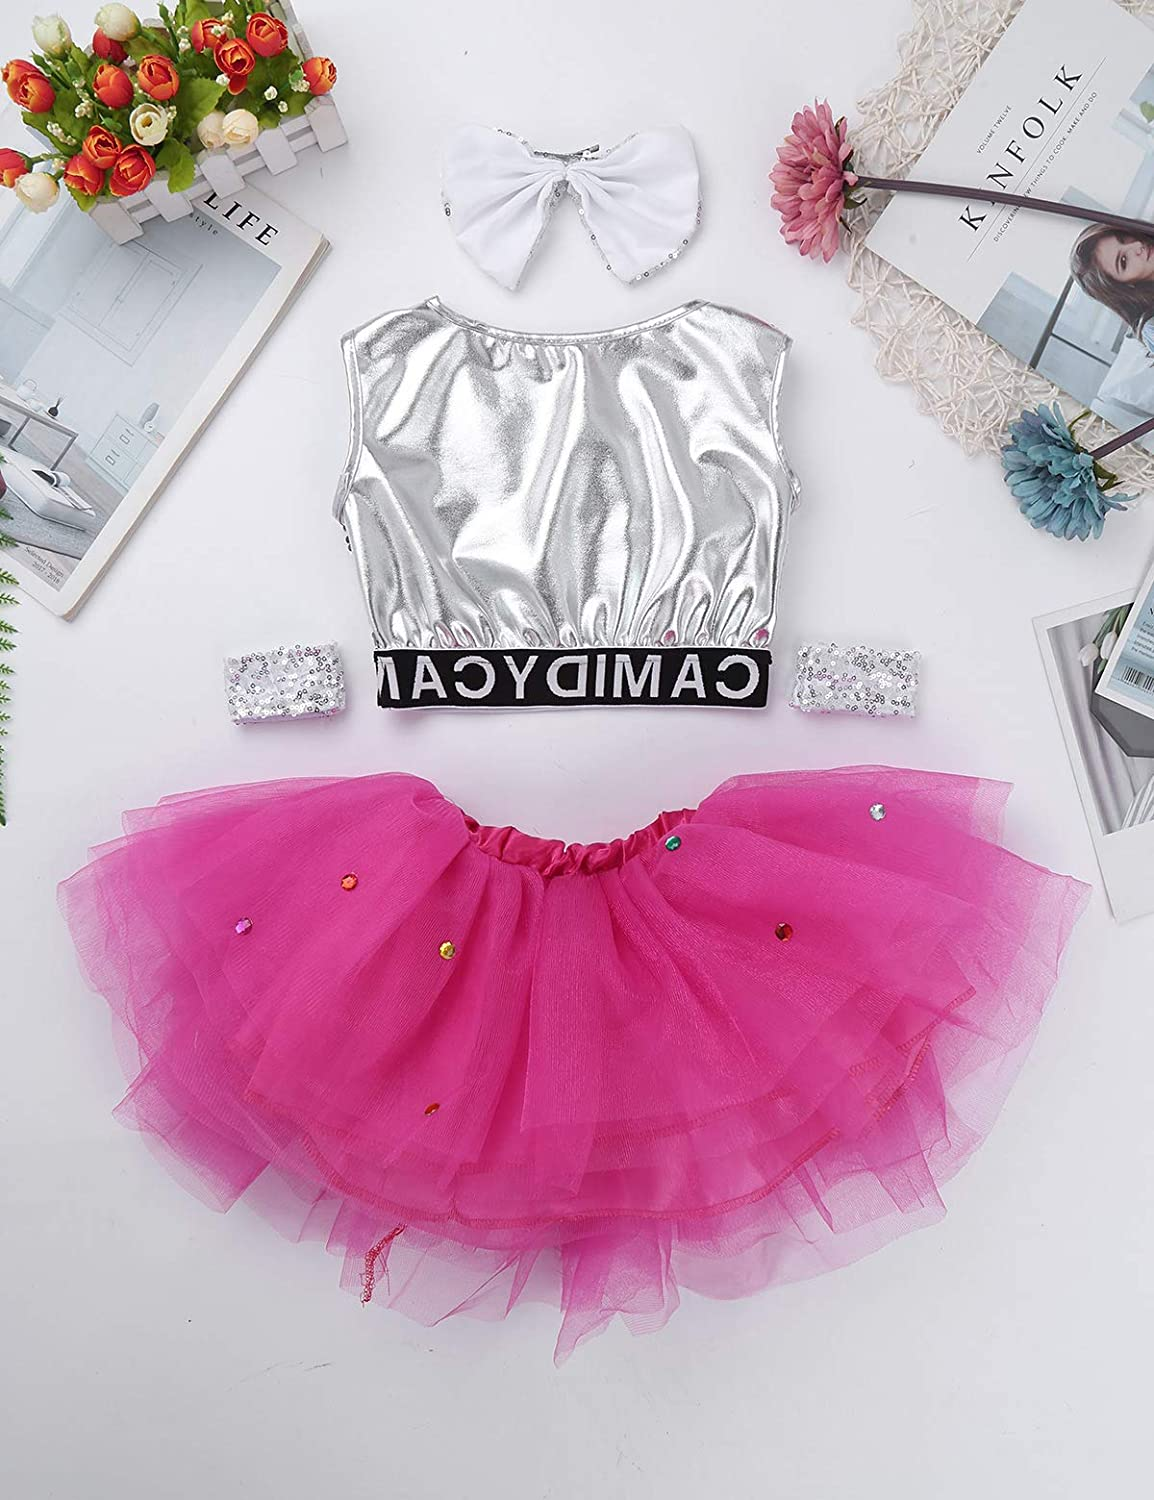 ec7f1787ca93 Amazon.com: iEFiEL Girls Sequined Crop Top with Tutu Skirt Hair Clip  Costume Kids Choir Jazz Dance Stage Performance Fancy Dress Up: Clothing